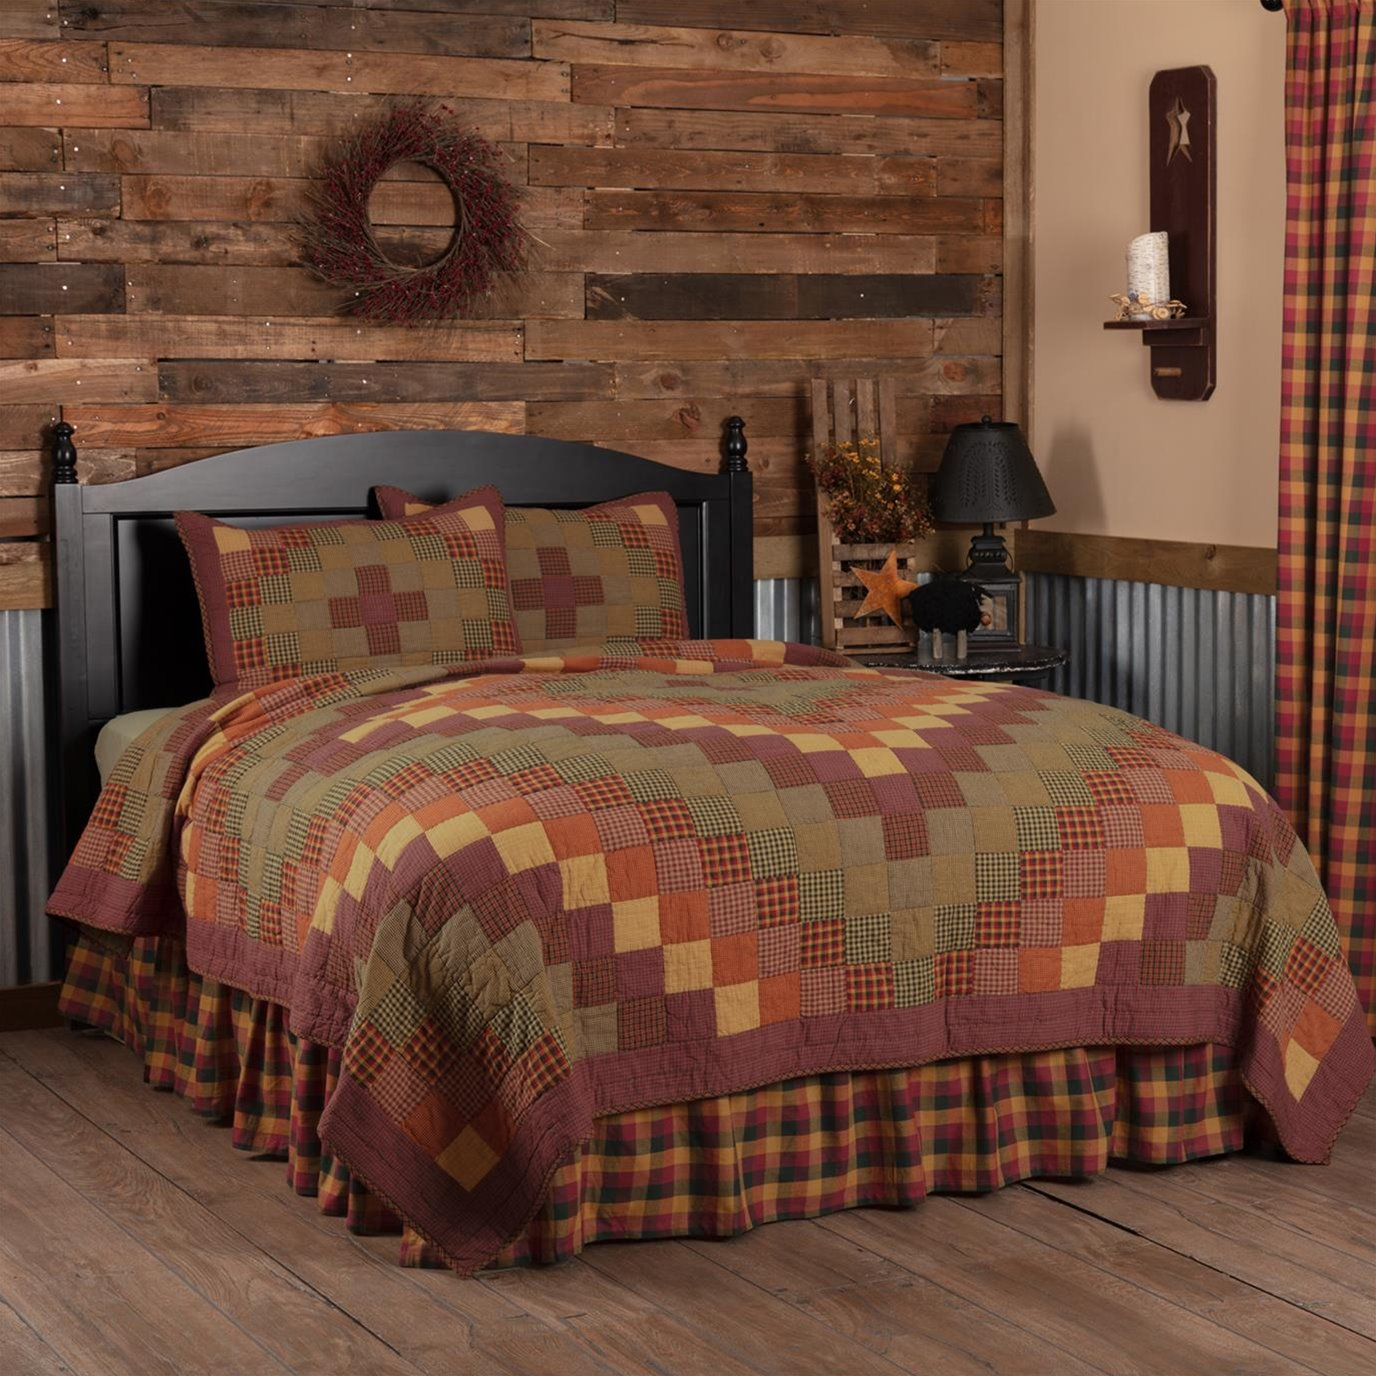 Heritage Farms King Quilt Set; 1-Quilt 105Wx95L w/2 Shams 21x37